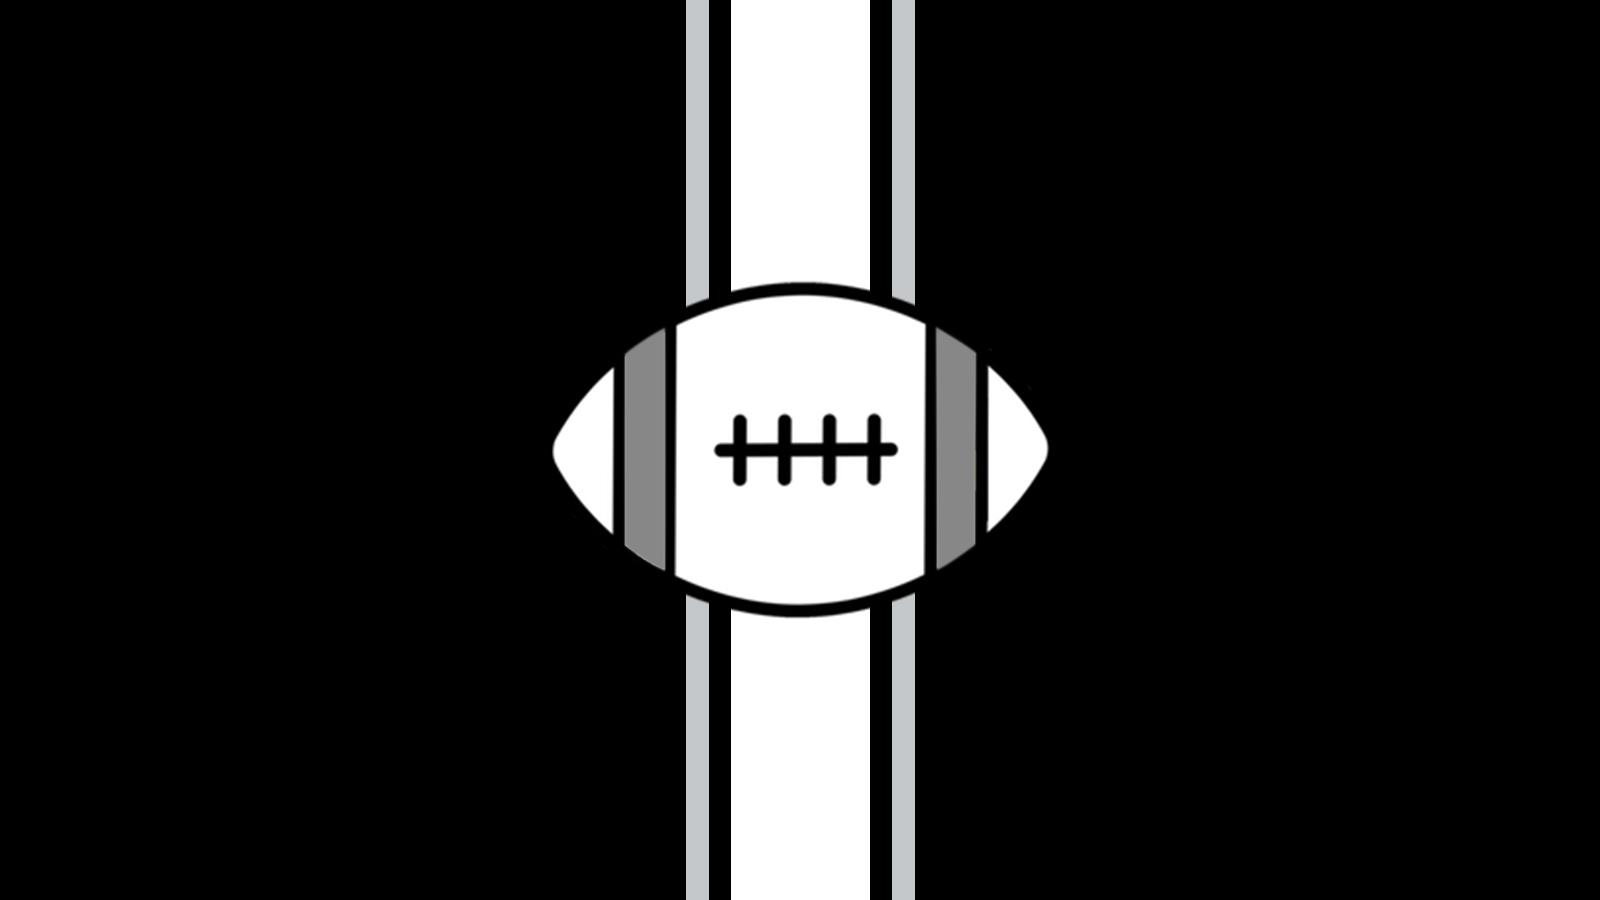 AFC Wild Card or Divisional Playoffs - TBD at Oakland Raiders (Date TBD) (If Necessary)